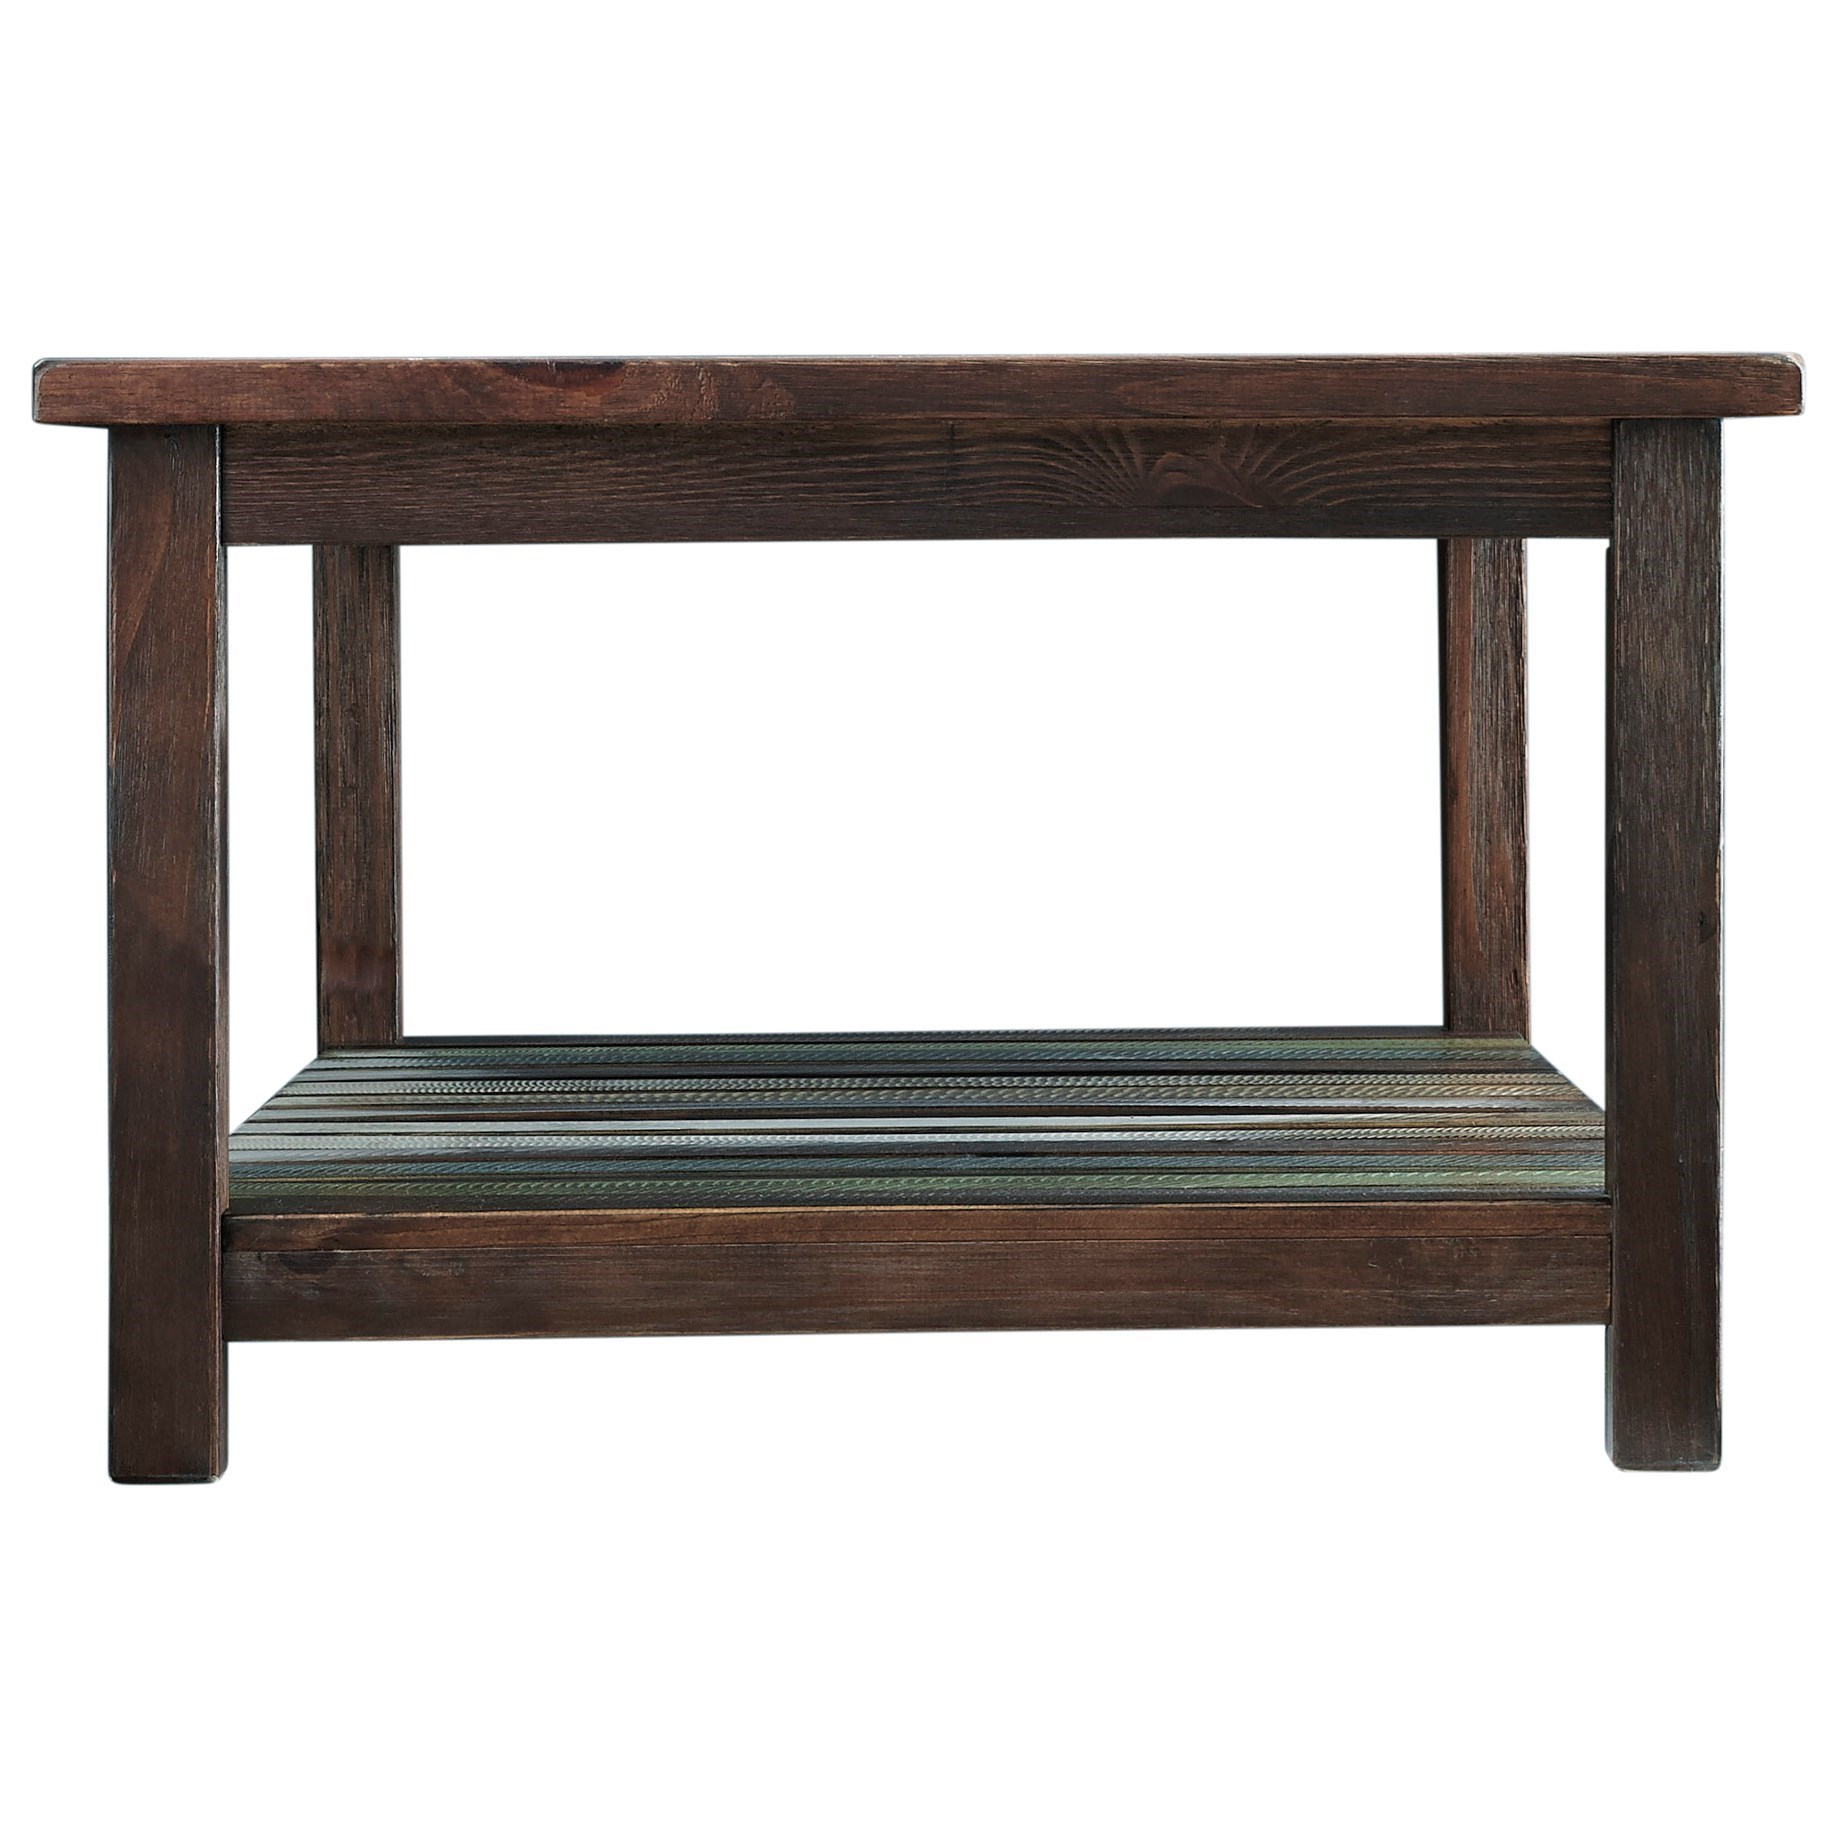 Rectangular Cocktail Table With Colorful Plank Shelf By